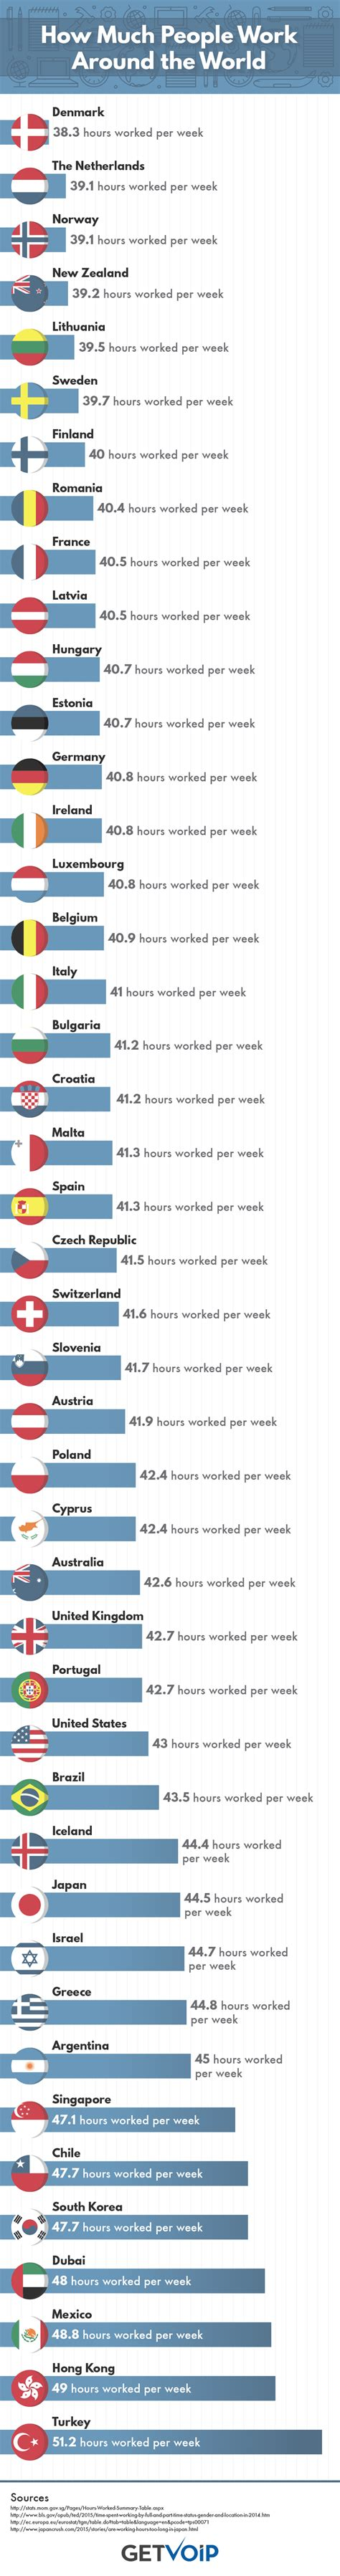 How Much People Work Around The World [infographic]  The. Sample Experienced Resume Software Engineer. Type Of Skills To Put On A Resume. Best Business Analyst Resume Sample. Sample Resume For Business Analyst Position. Sample Bartender Resume Skills. Resume Examples For Teachers With No Experience. Graduate School Application Resume Sample. Sample Of Interest In Resume